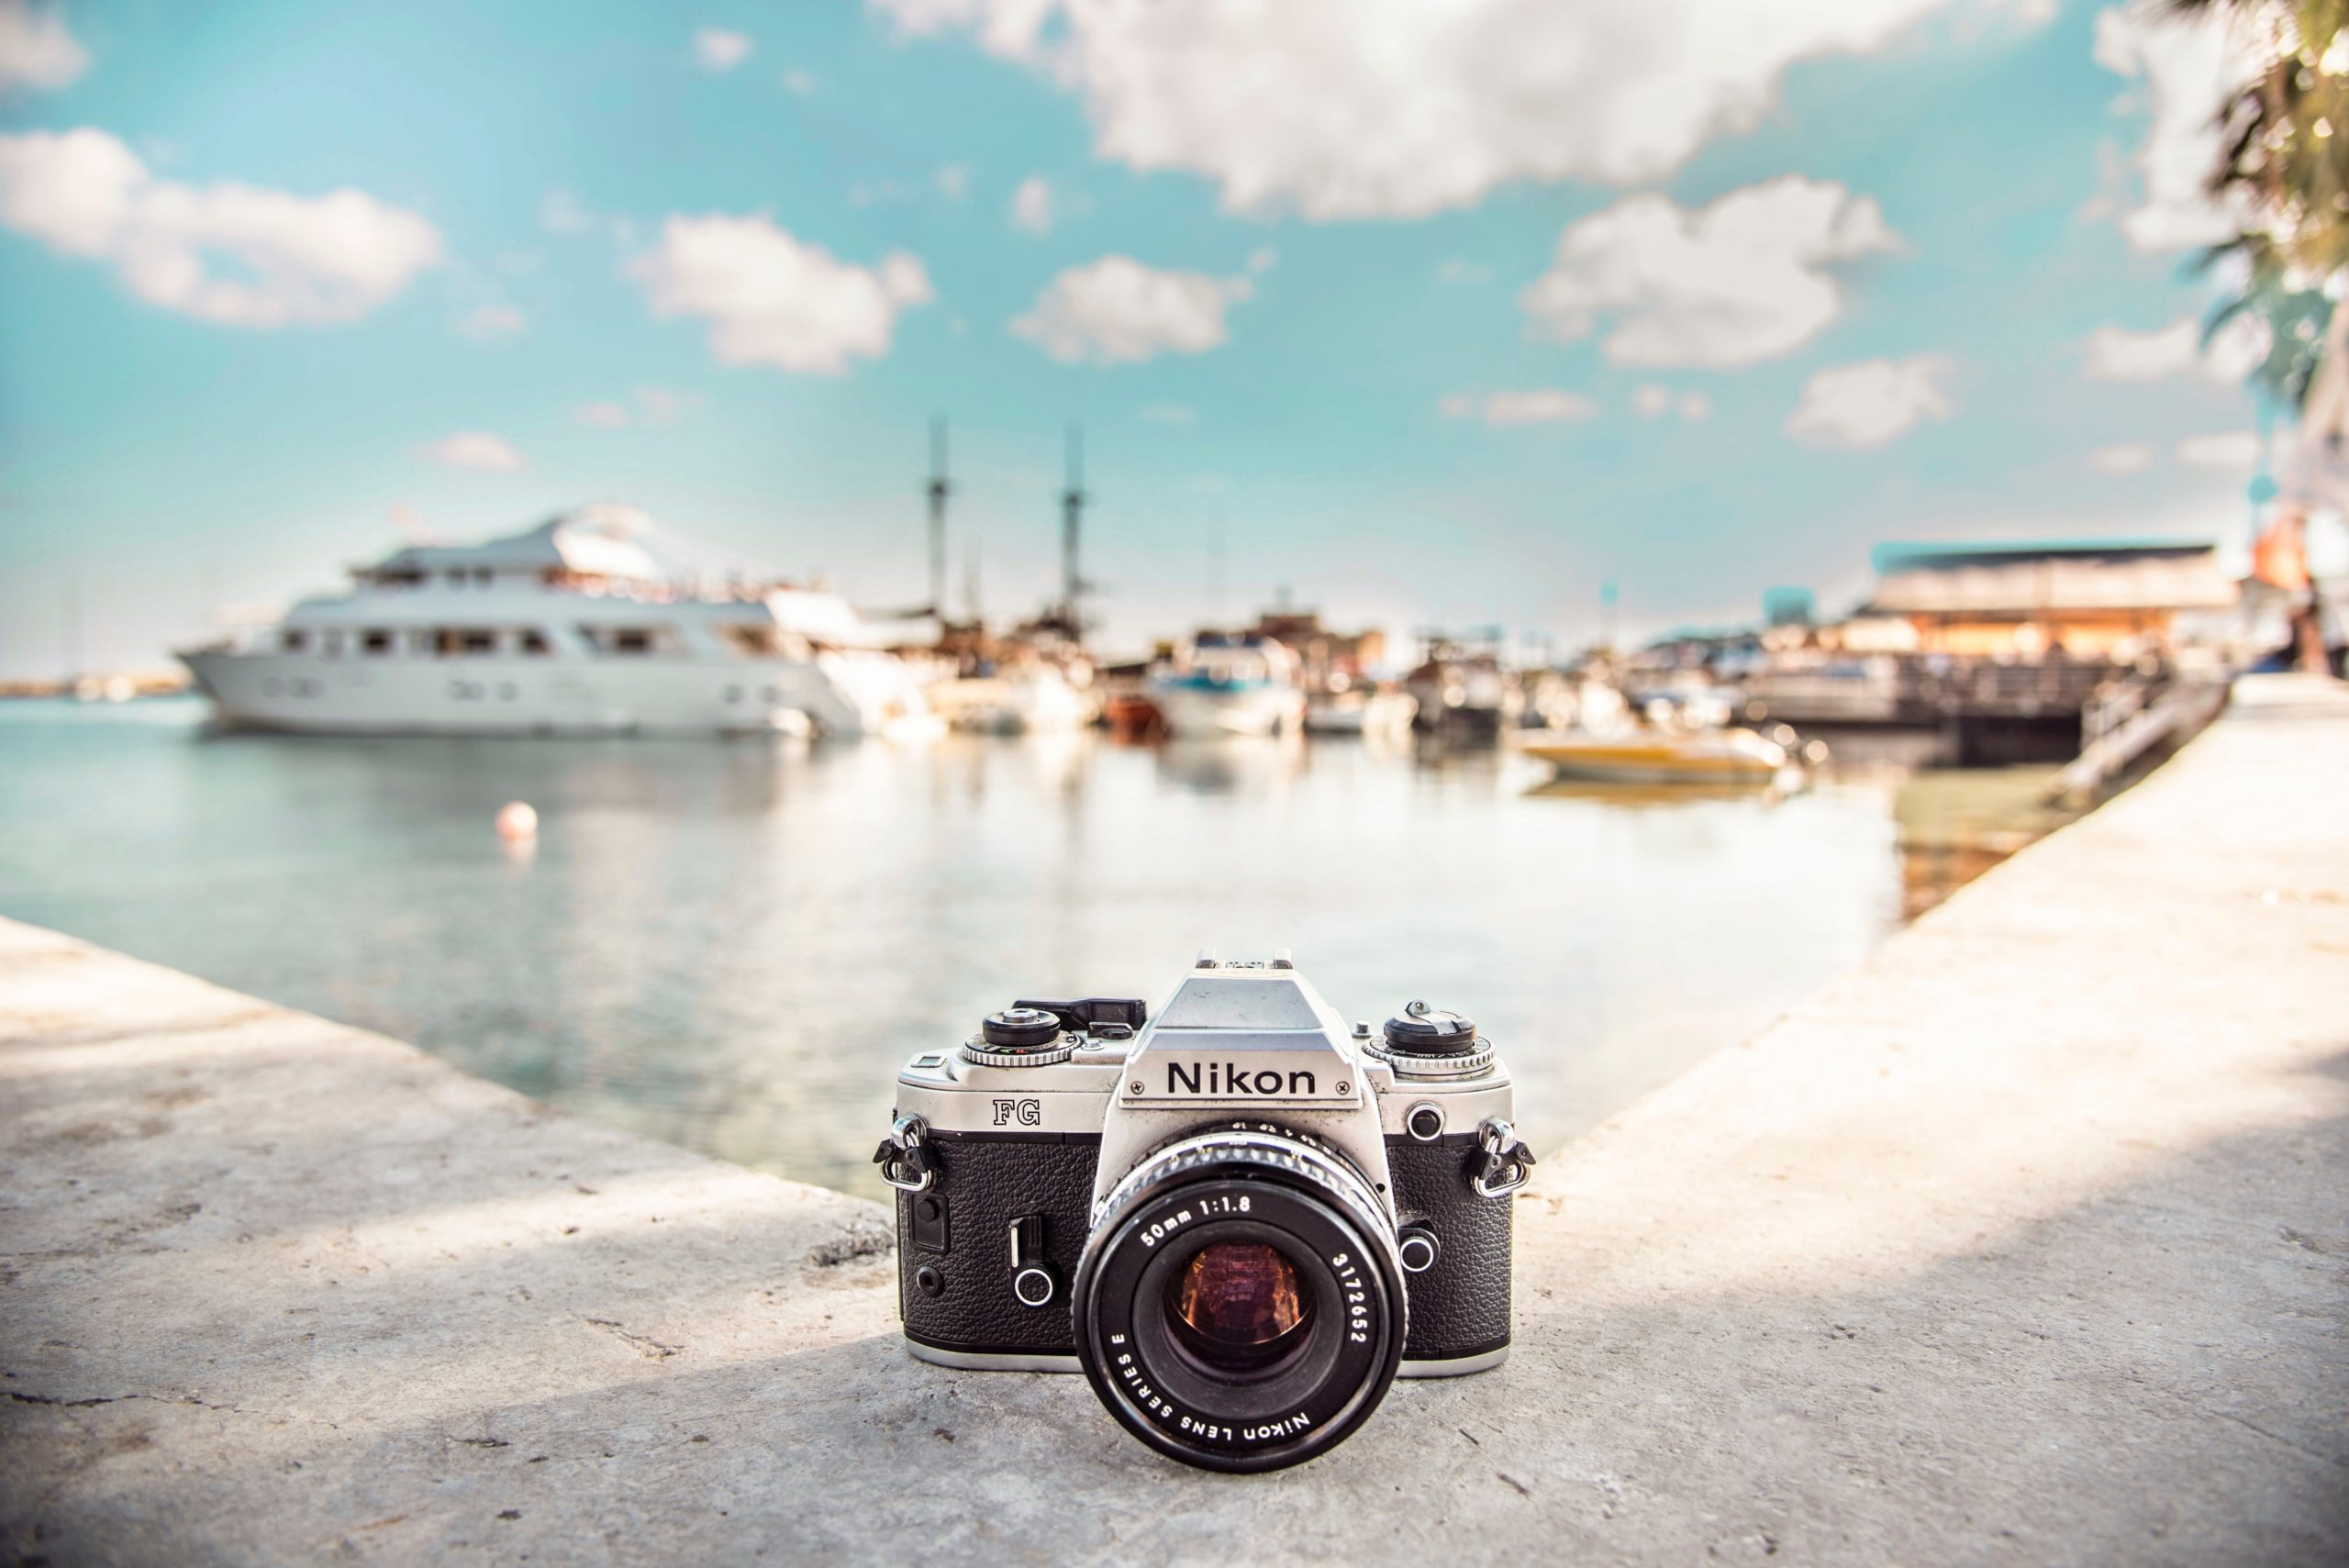 A camera sitting on a wall with the sea in the background filled with boats